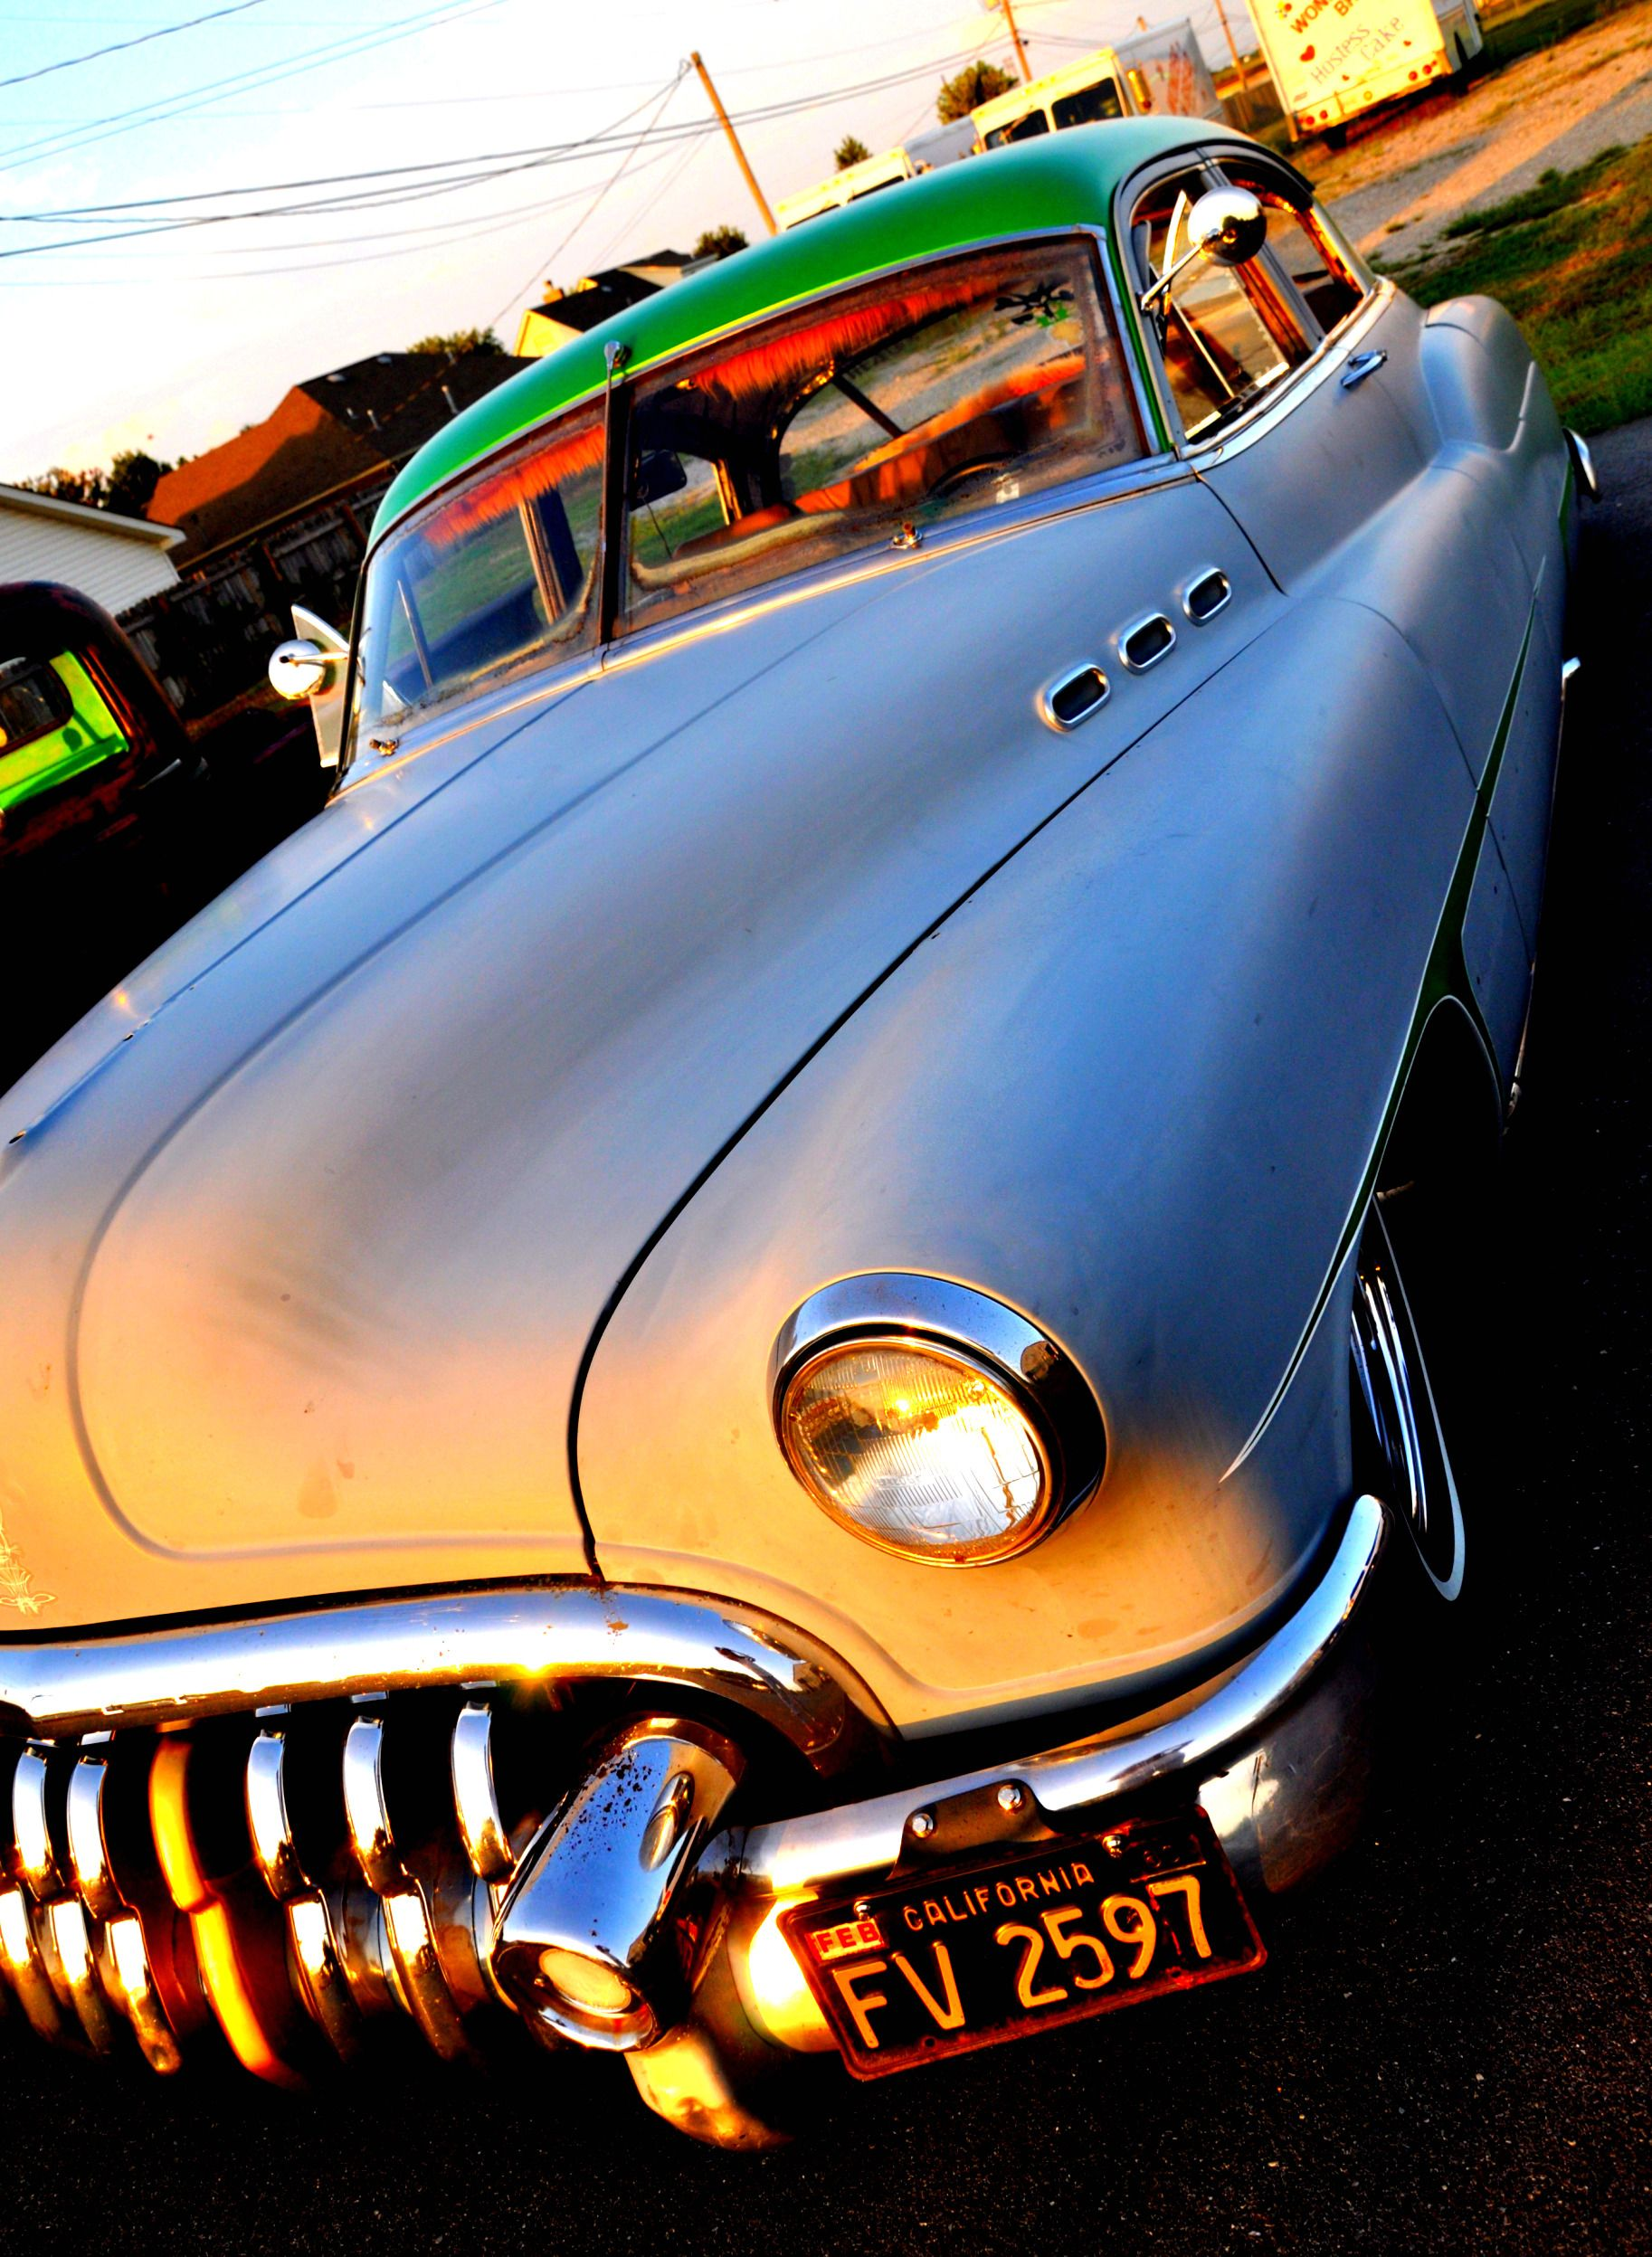 Classic Cars My Photography Pinterest Cars Dream Cars And Gas - Car show greensboro